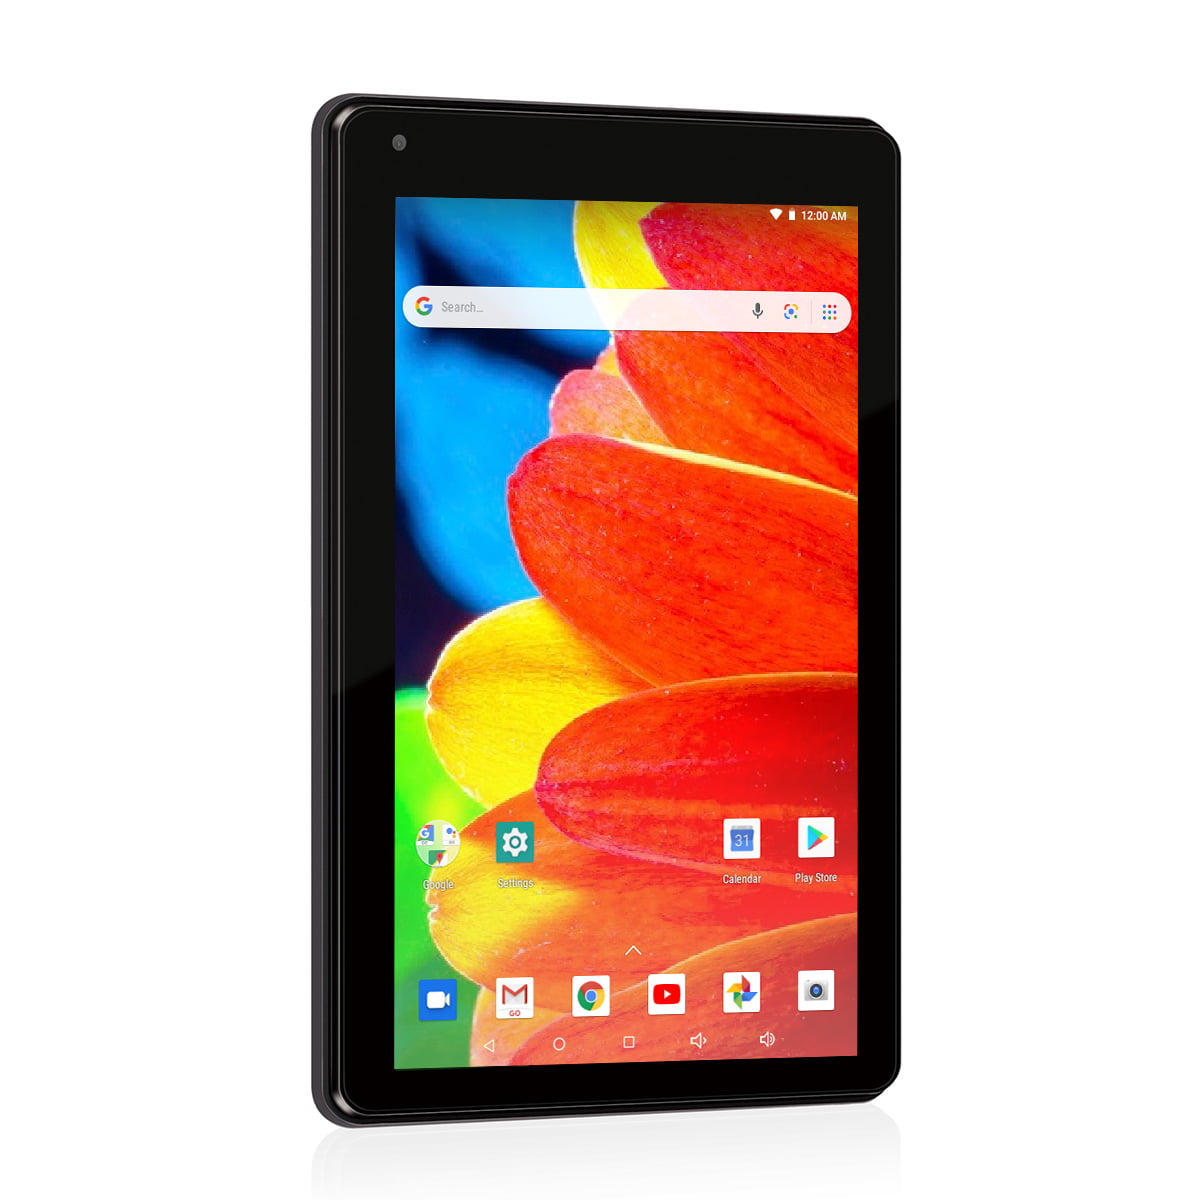 """RCA Voyager 7"""" 16GB Tablet Android OS - Charcoal - RCT6873W42"""